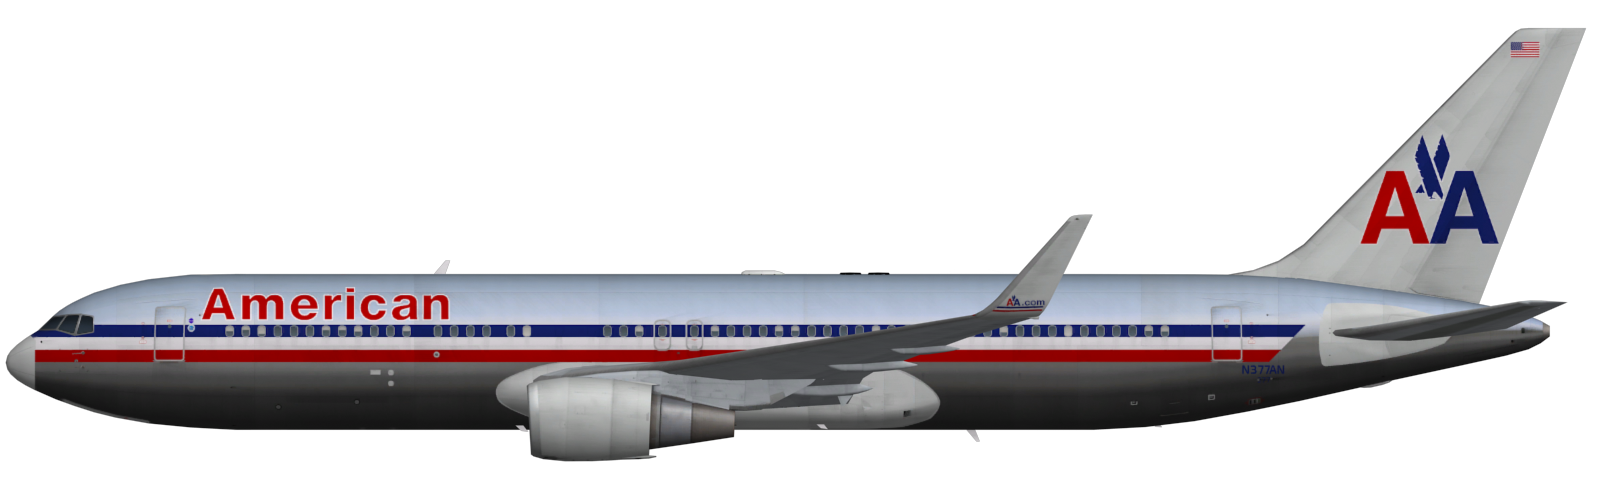 767 american airlines fsx telecharger :: ranetjapins gq